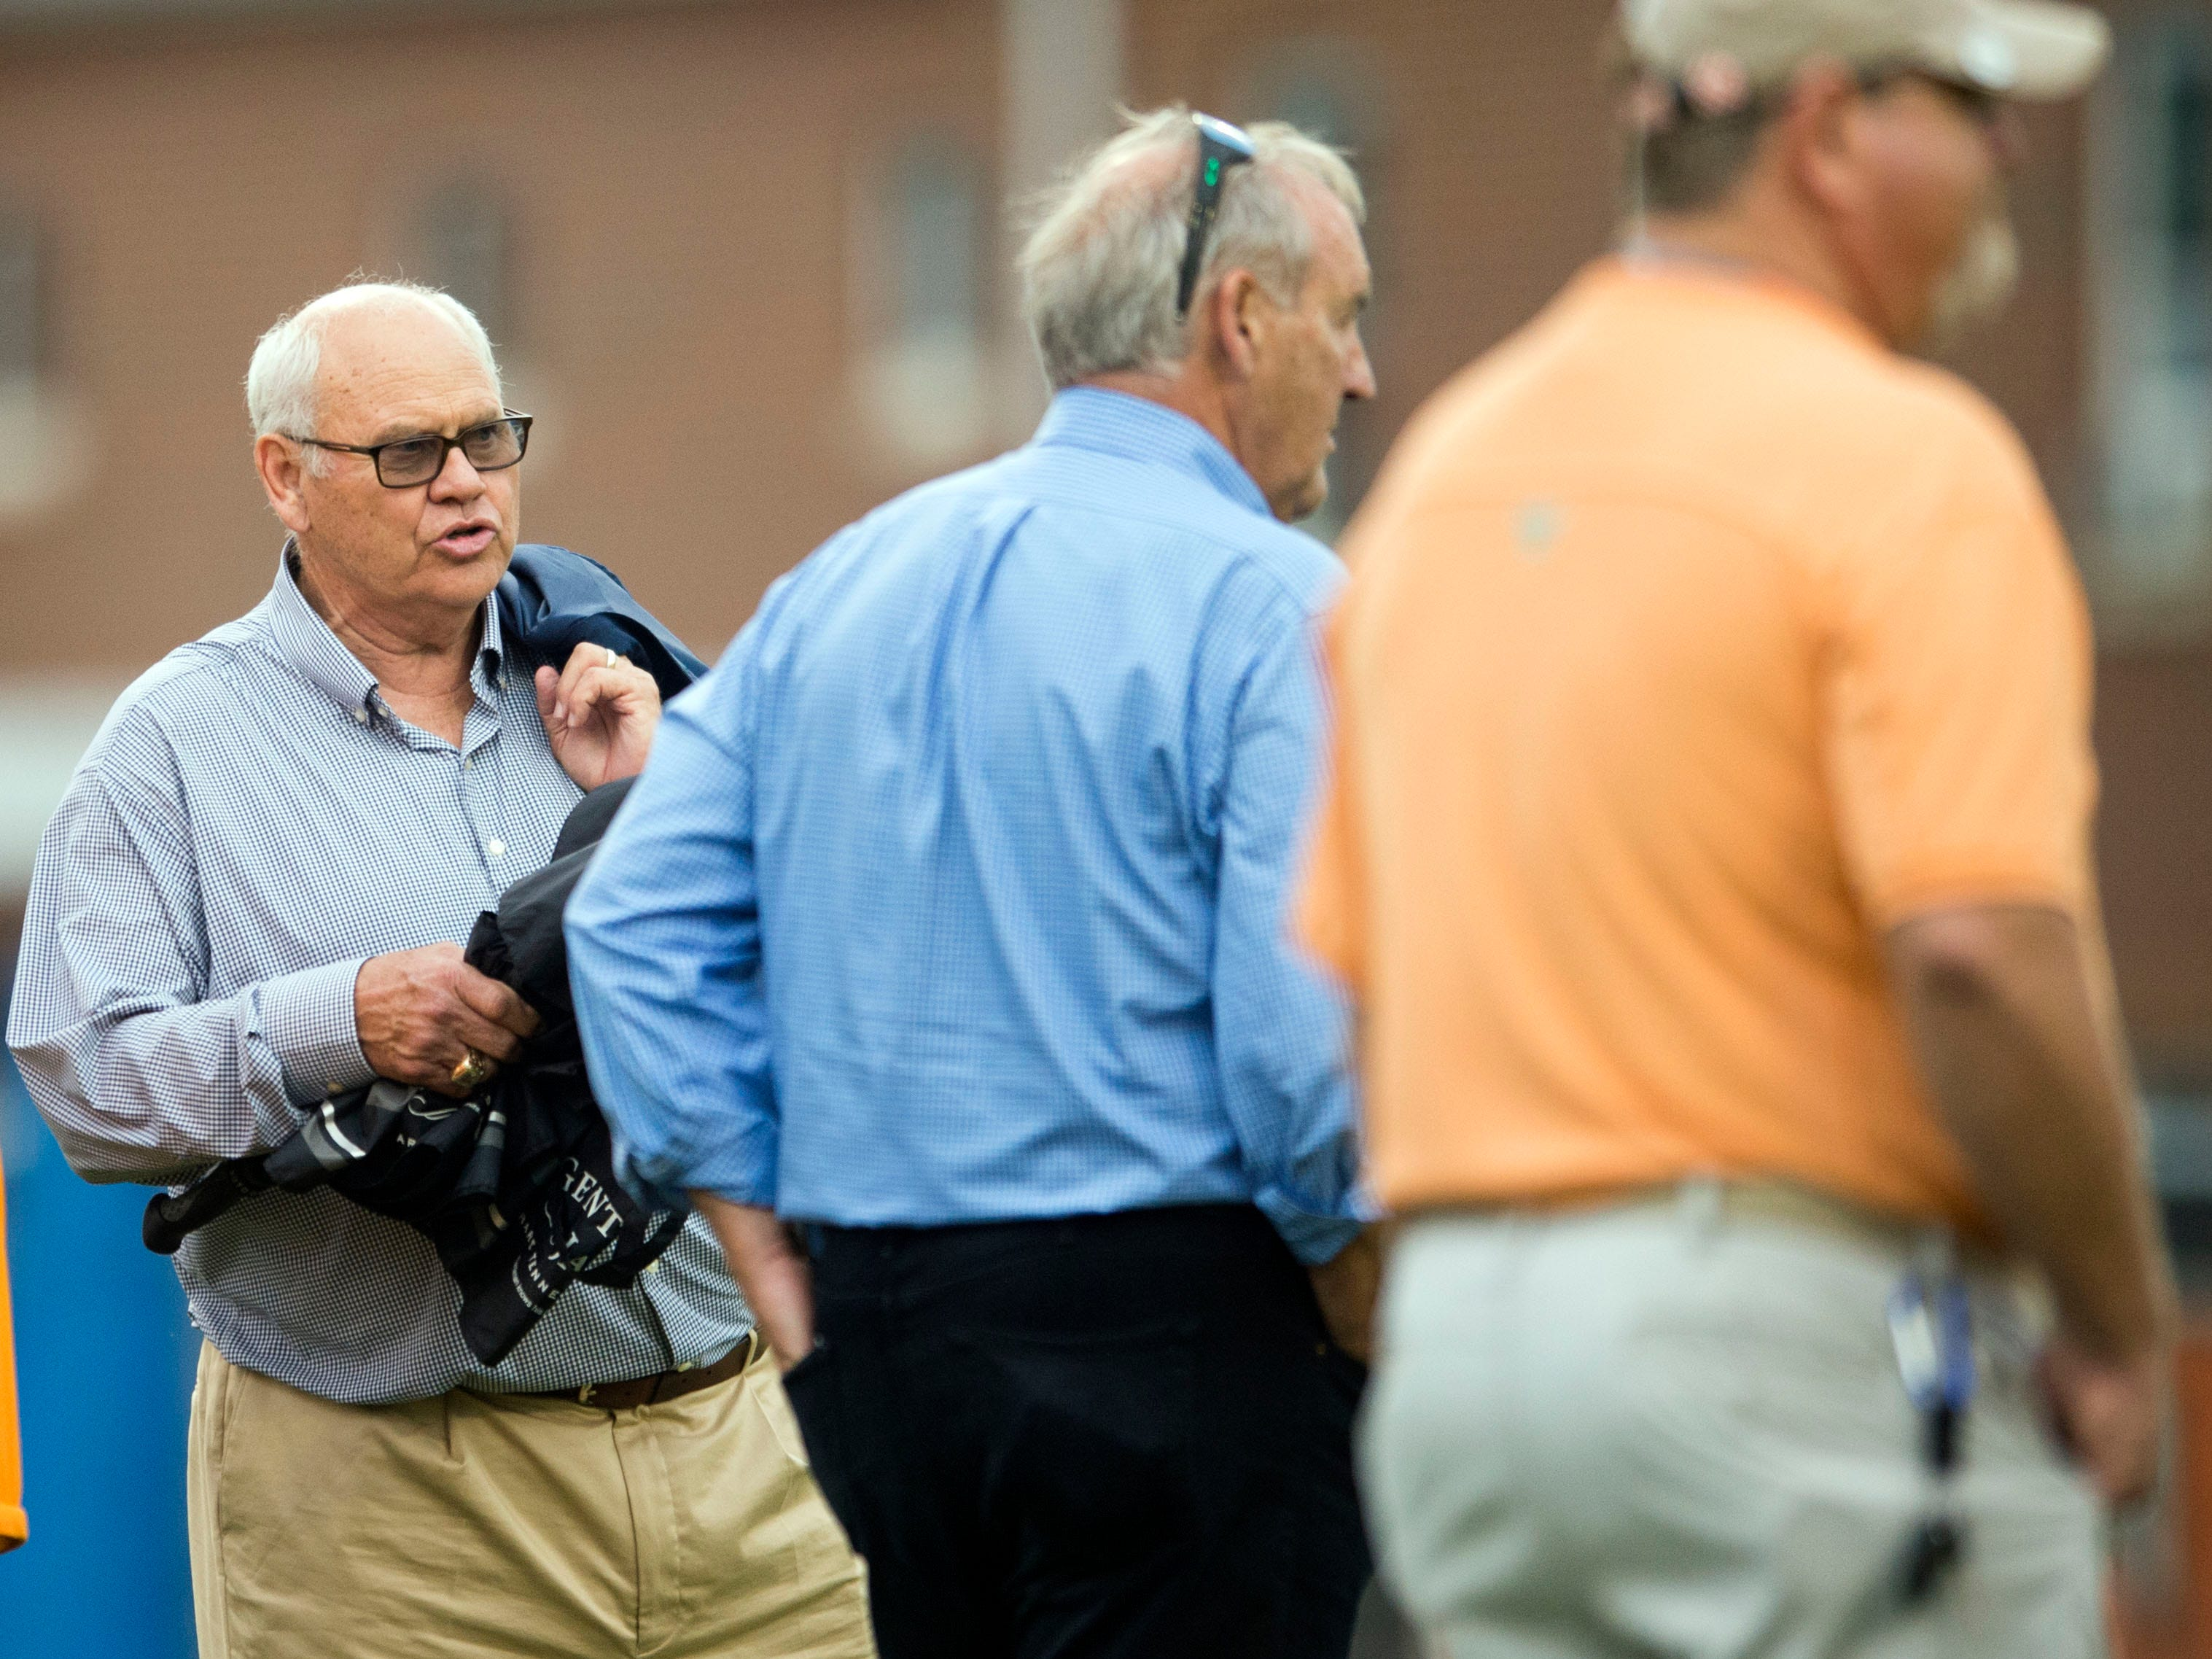 Tennessee athletic director Phillip Fulmer attending football practice at Haslam Field on Thursday, August 9, 2018.